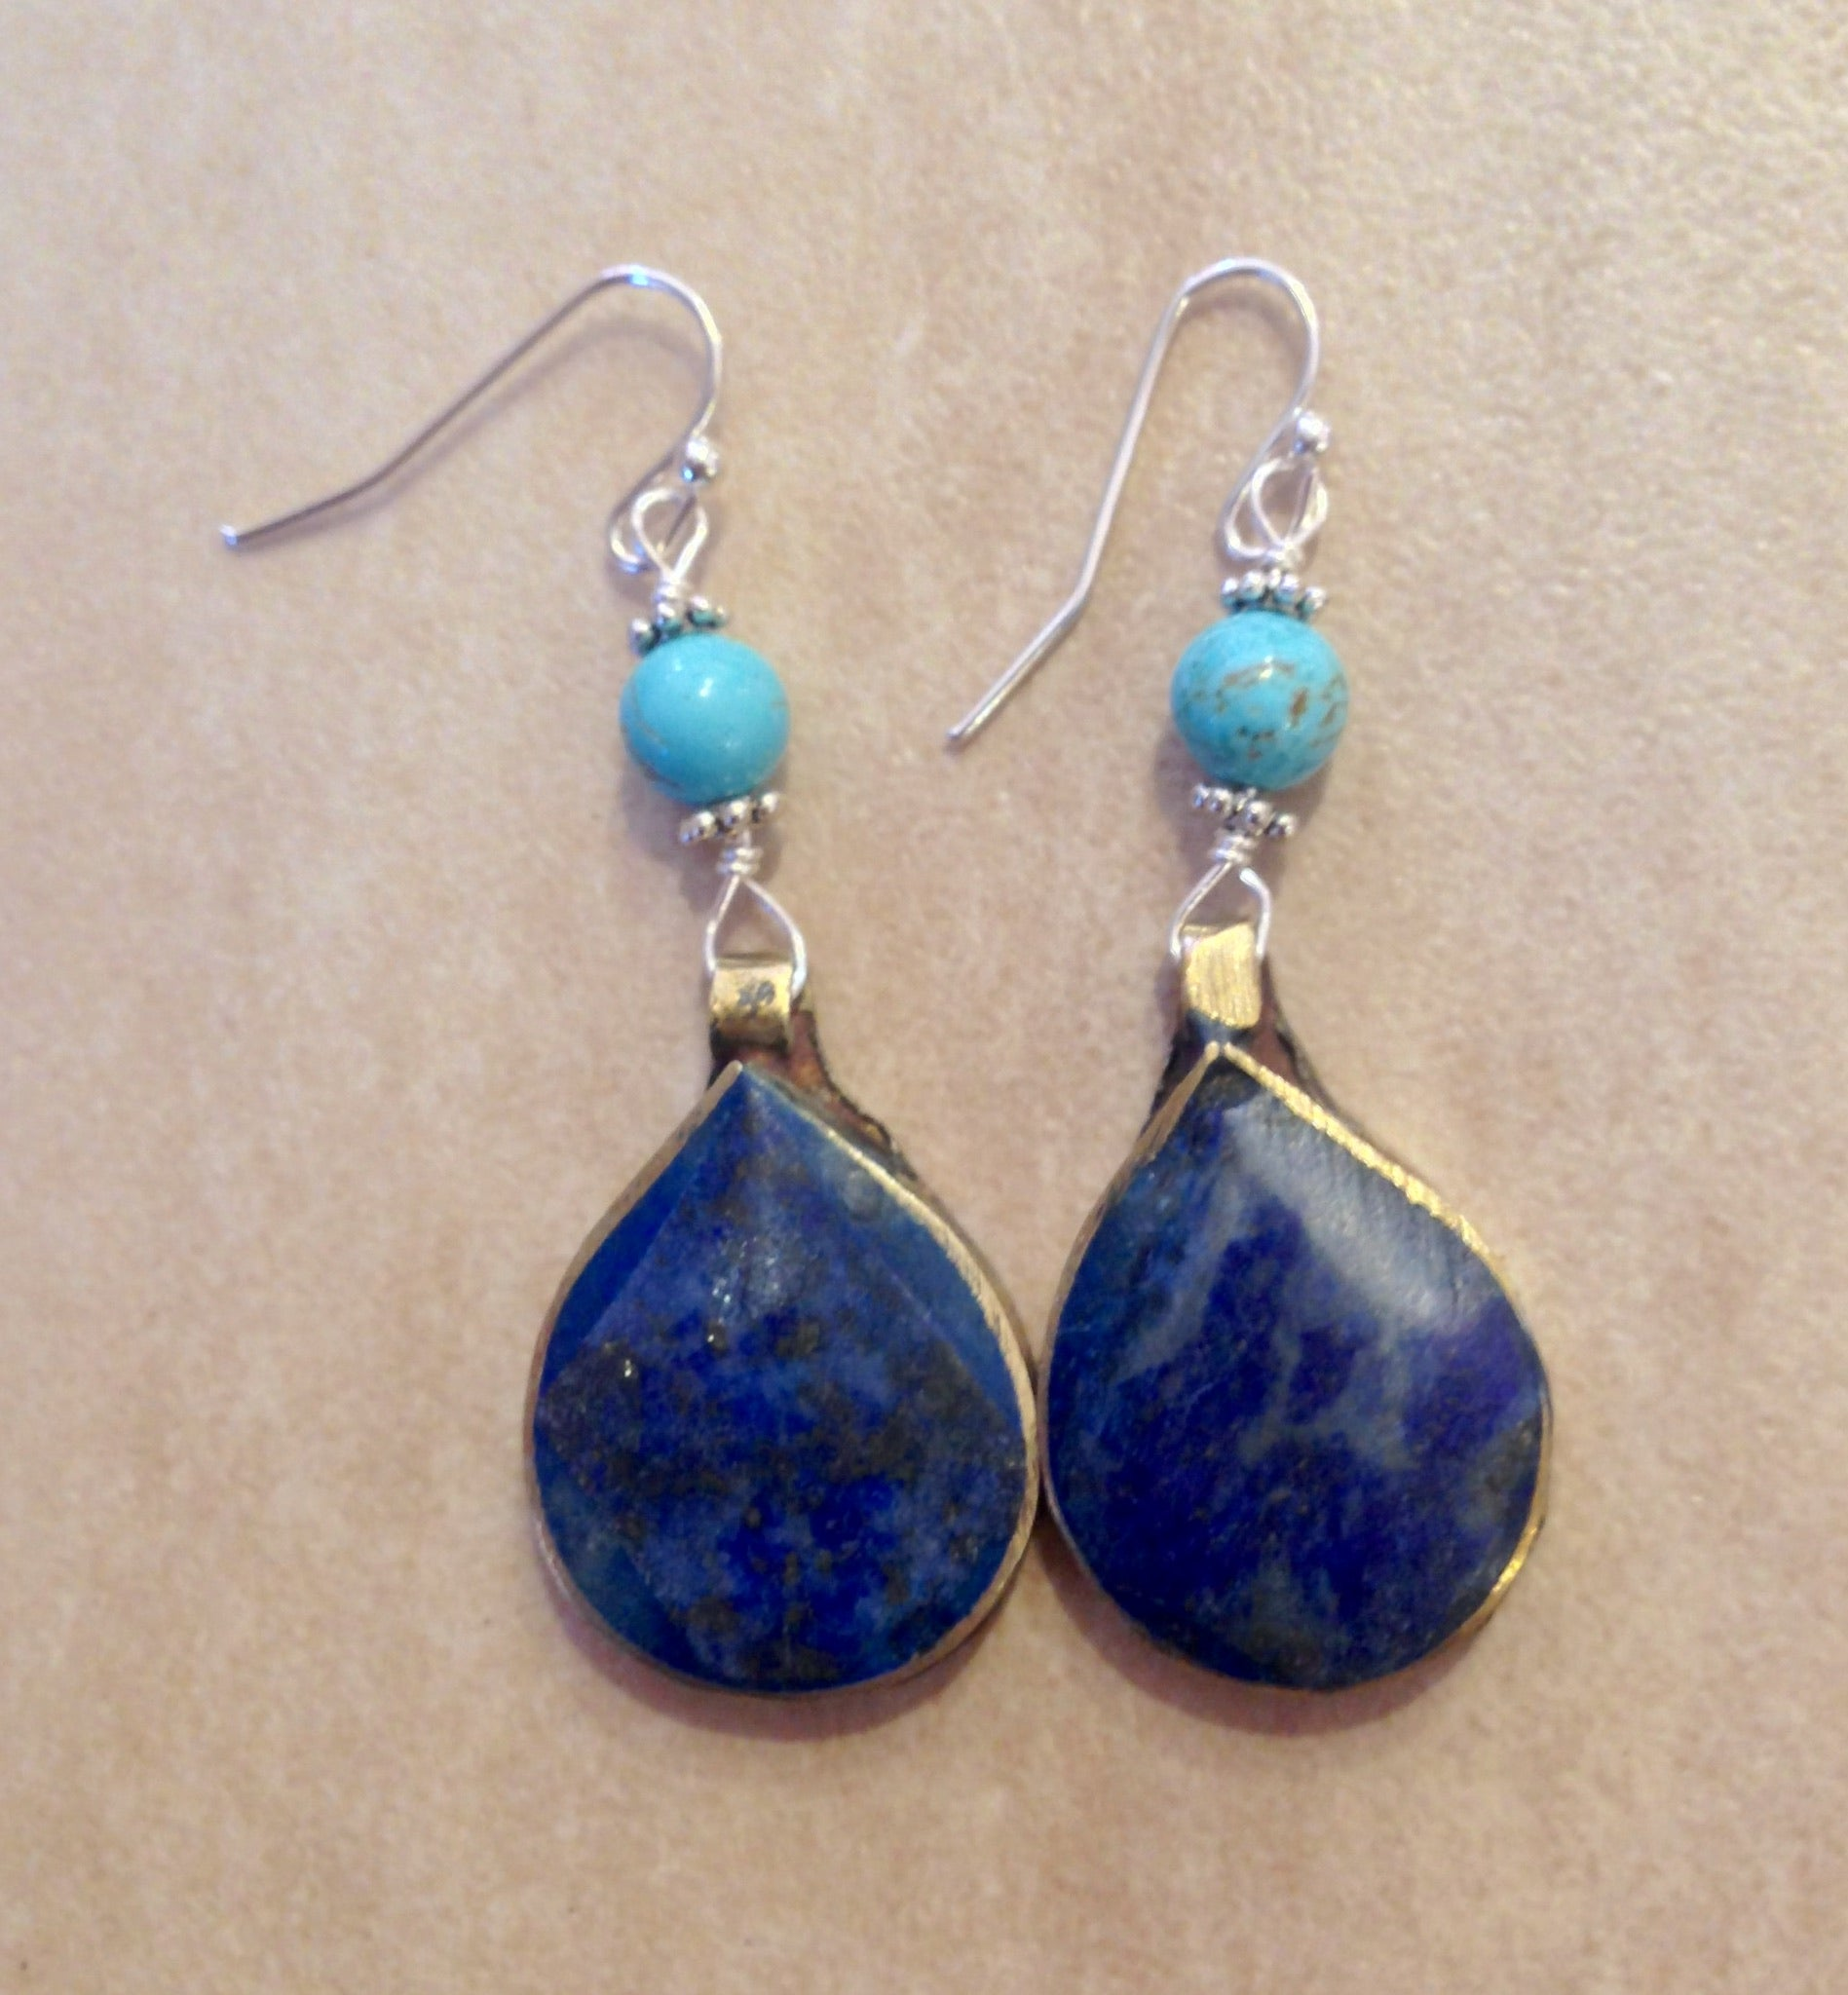 Lapis and turquoise drop earrings.